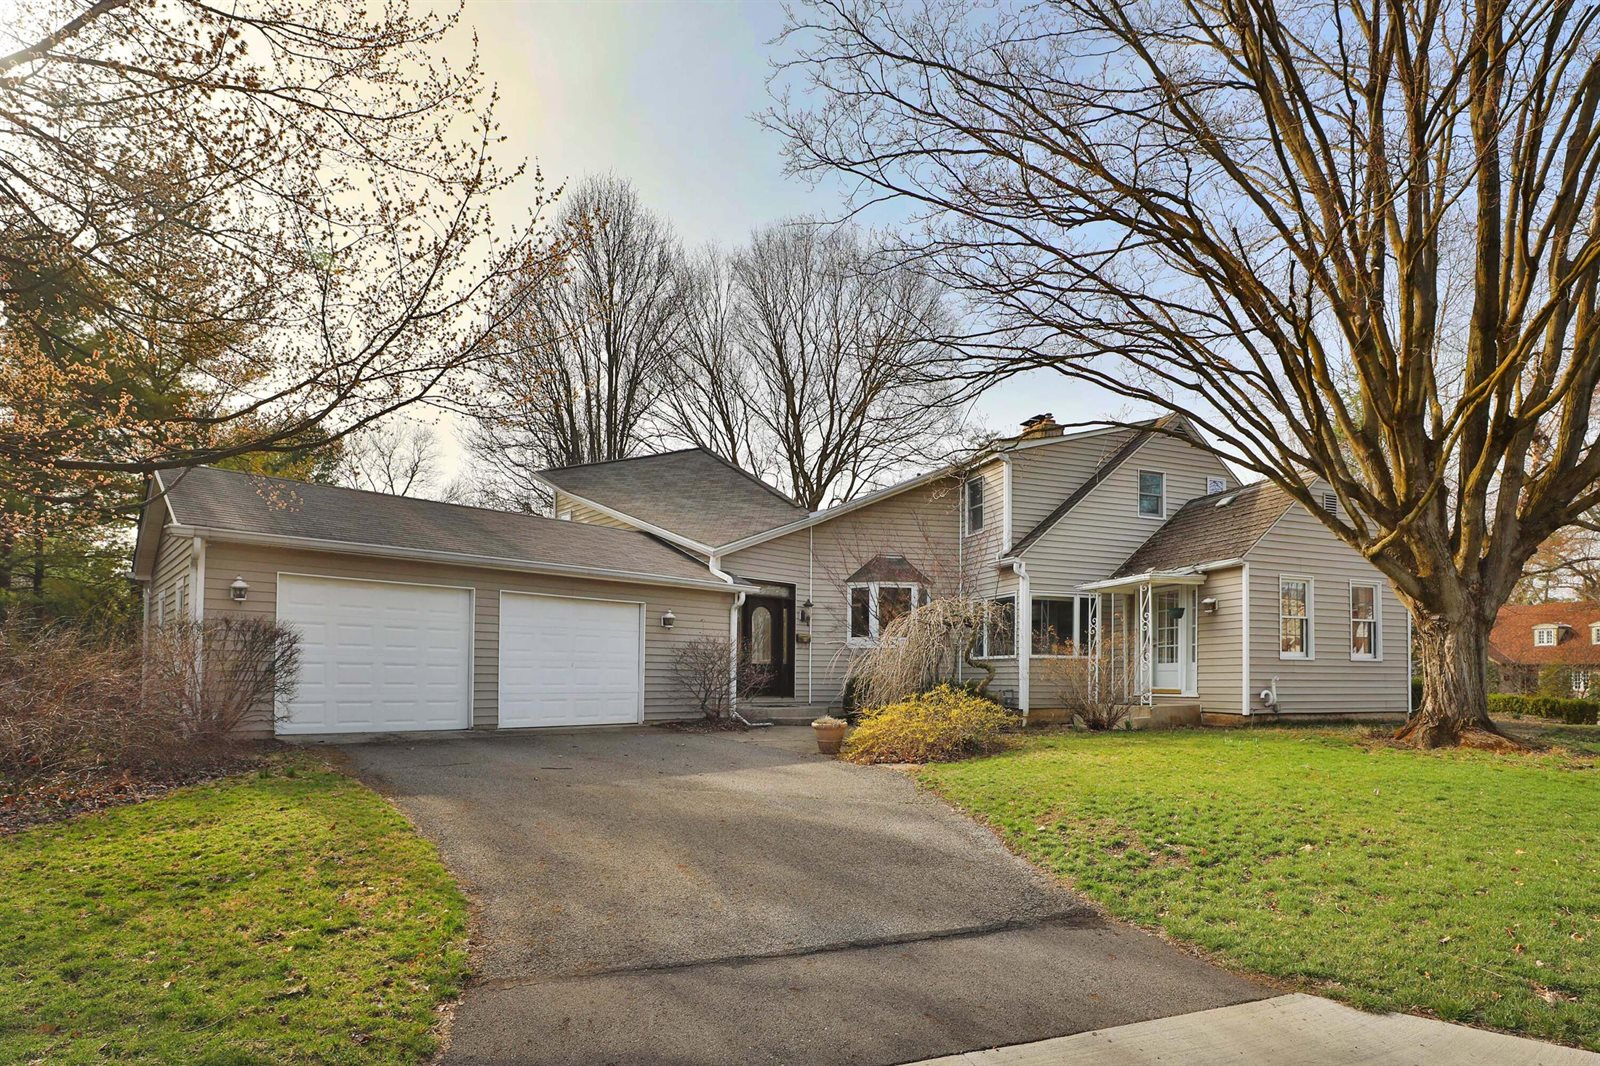 155 West Riverglen Drive, Worthington, OH 43085